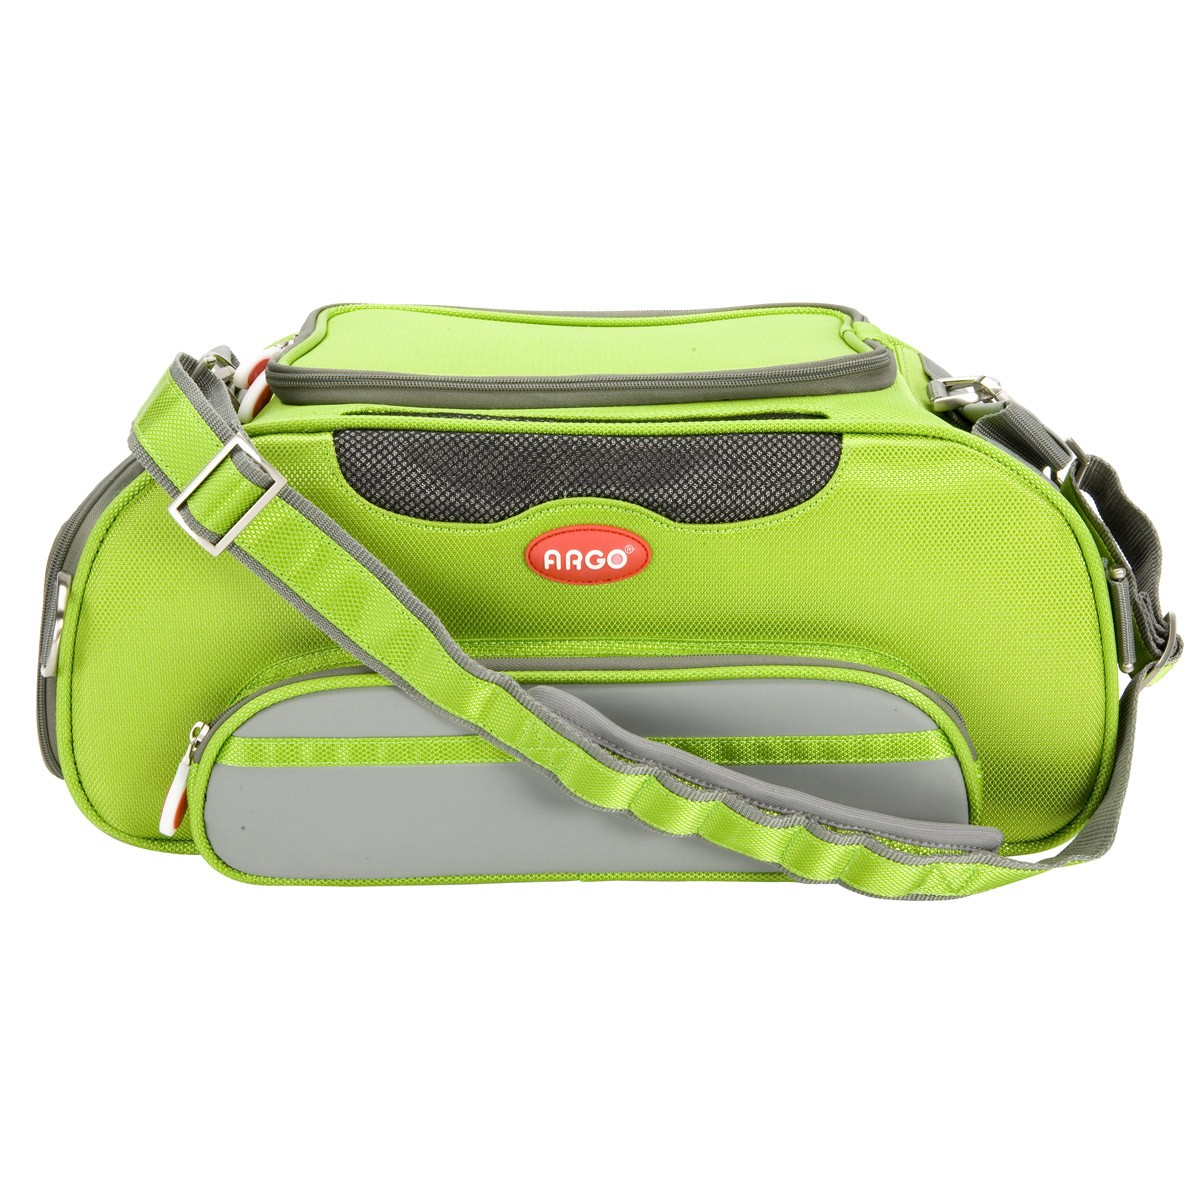 dcf48683a2 ARGO Aero-Pet Airline Approved Carrier Kiwi Green Small - 18.5 in